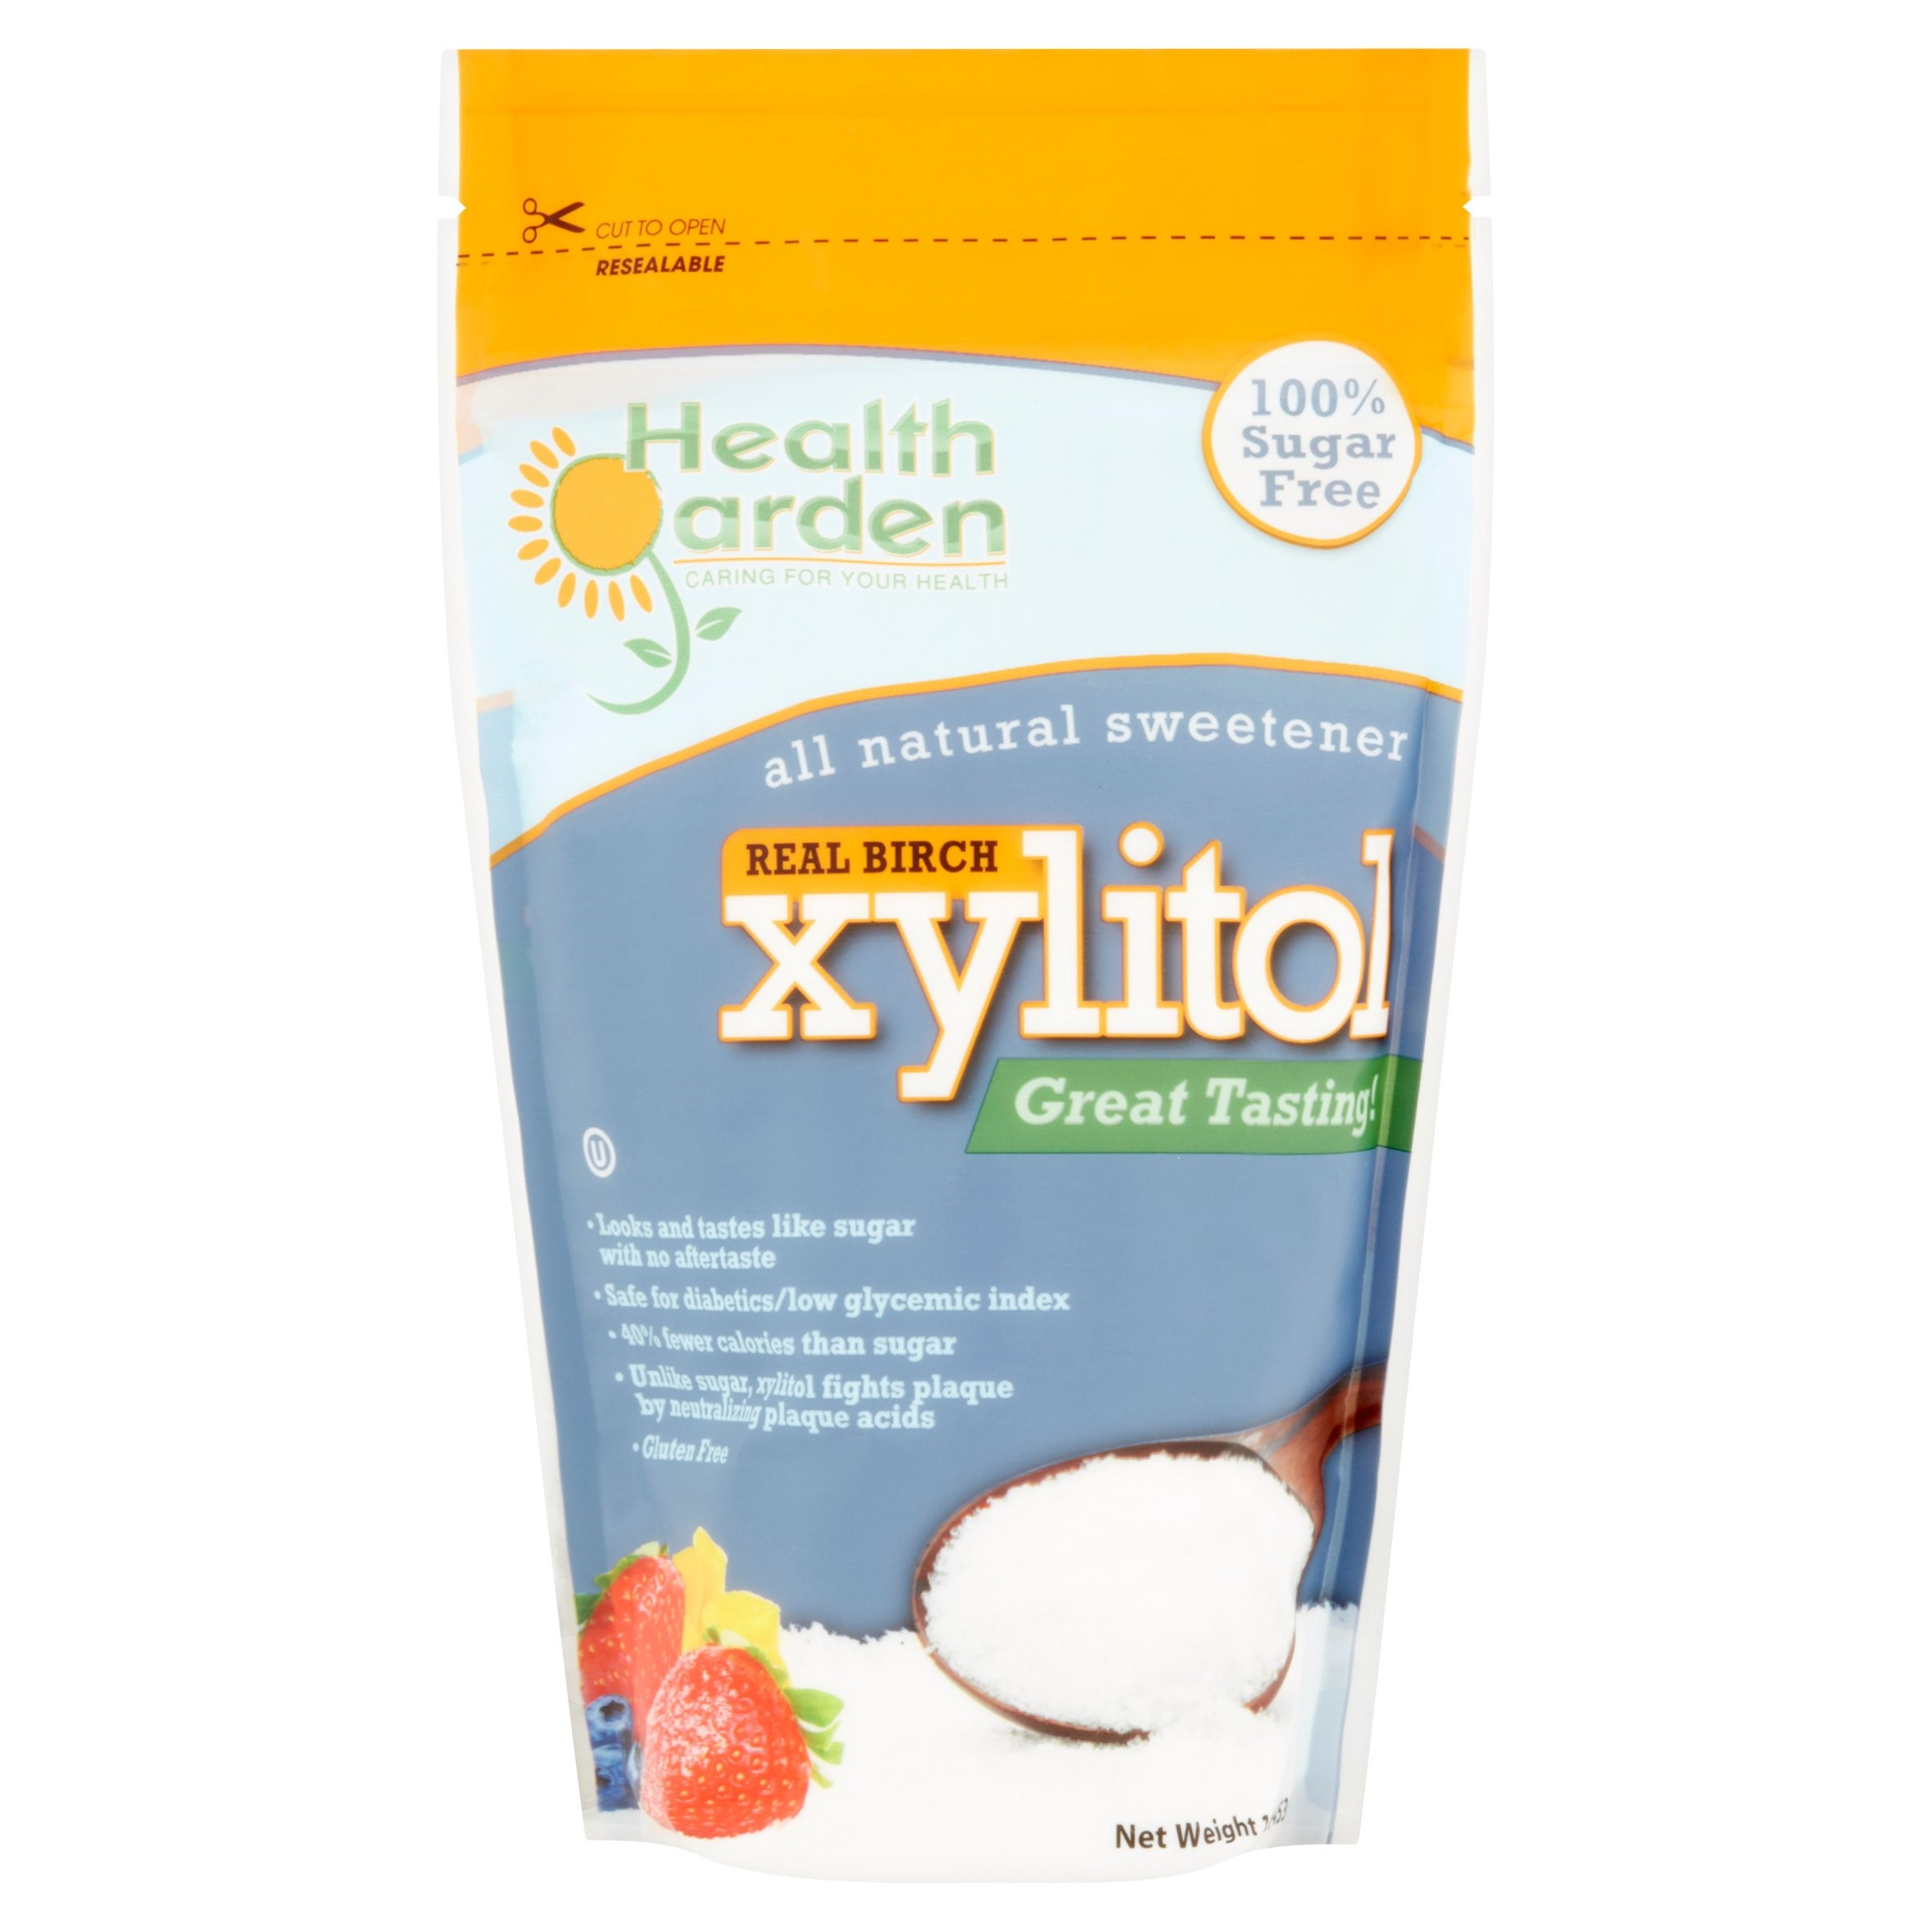 Health Garden Xylitol Real Birch All Natural Sweetener, 1 lb